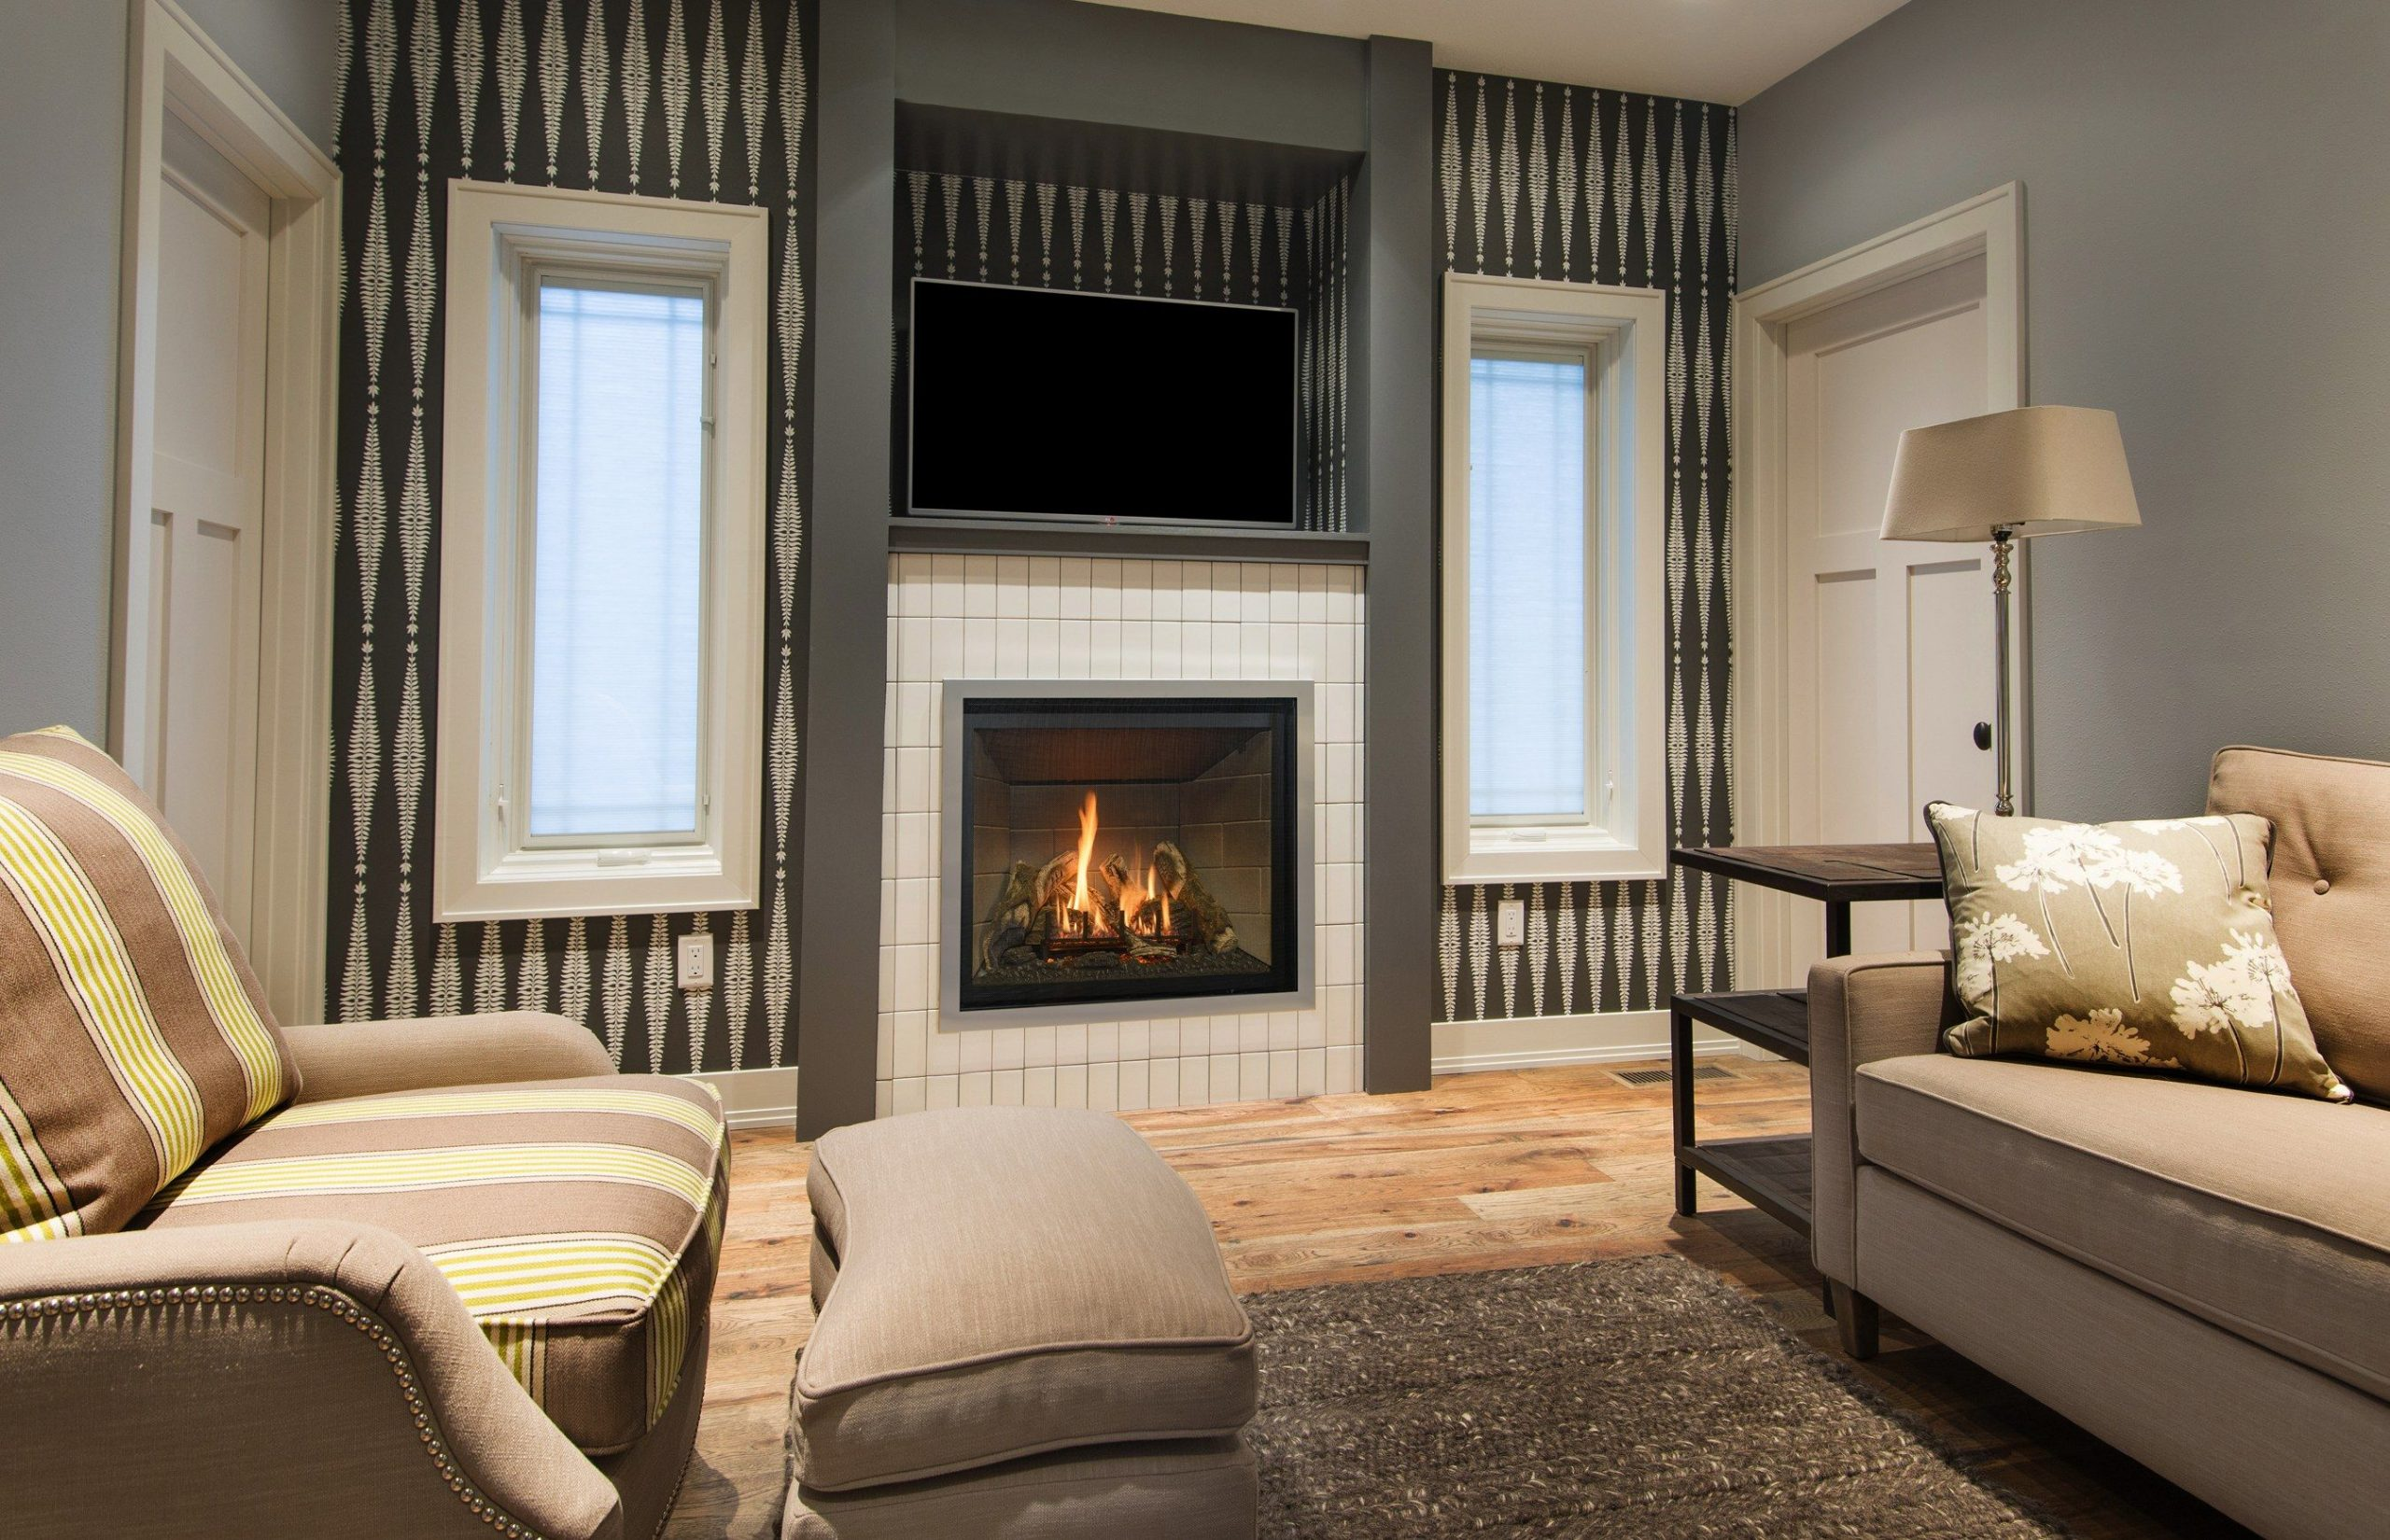 The Most Energy Efficient Fireplace Models